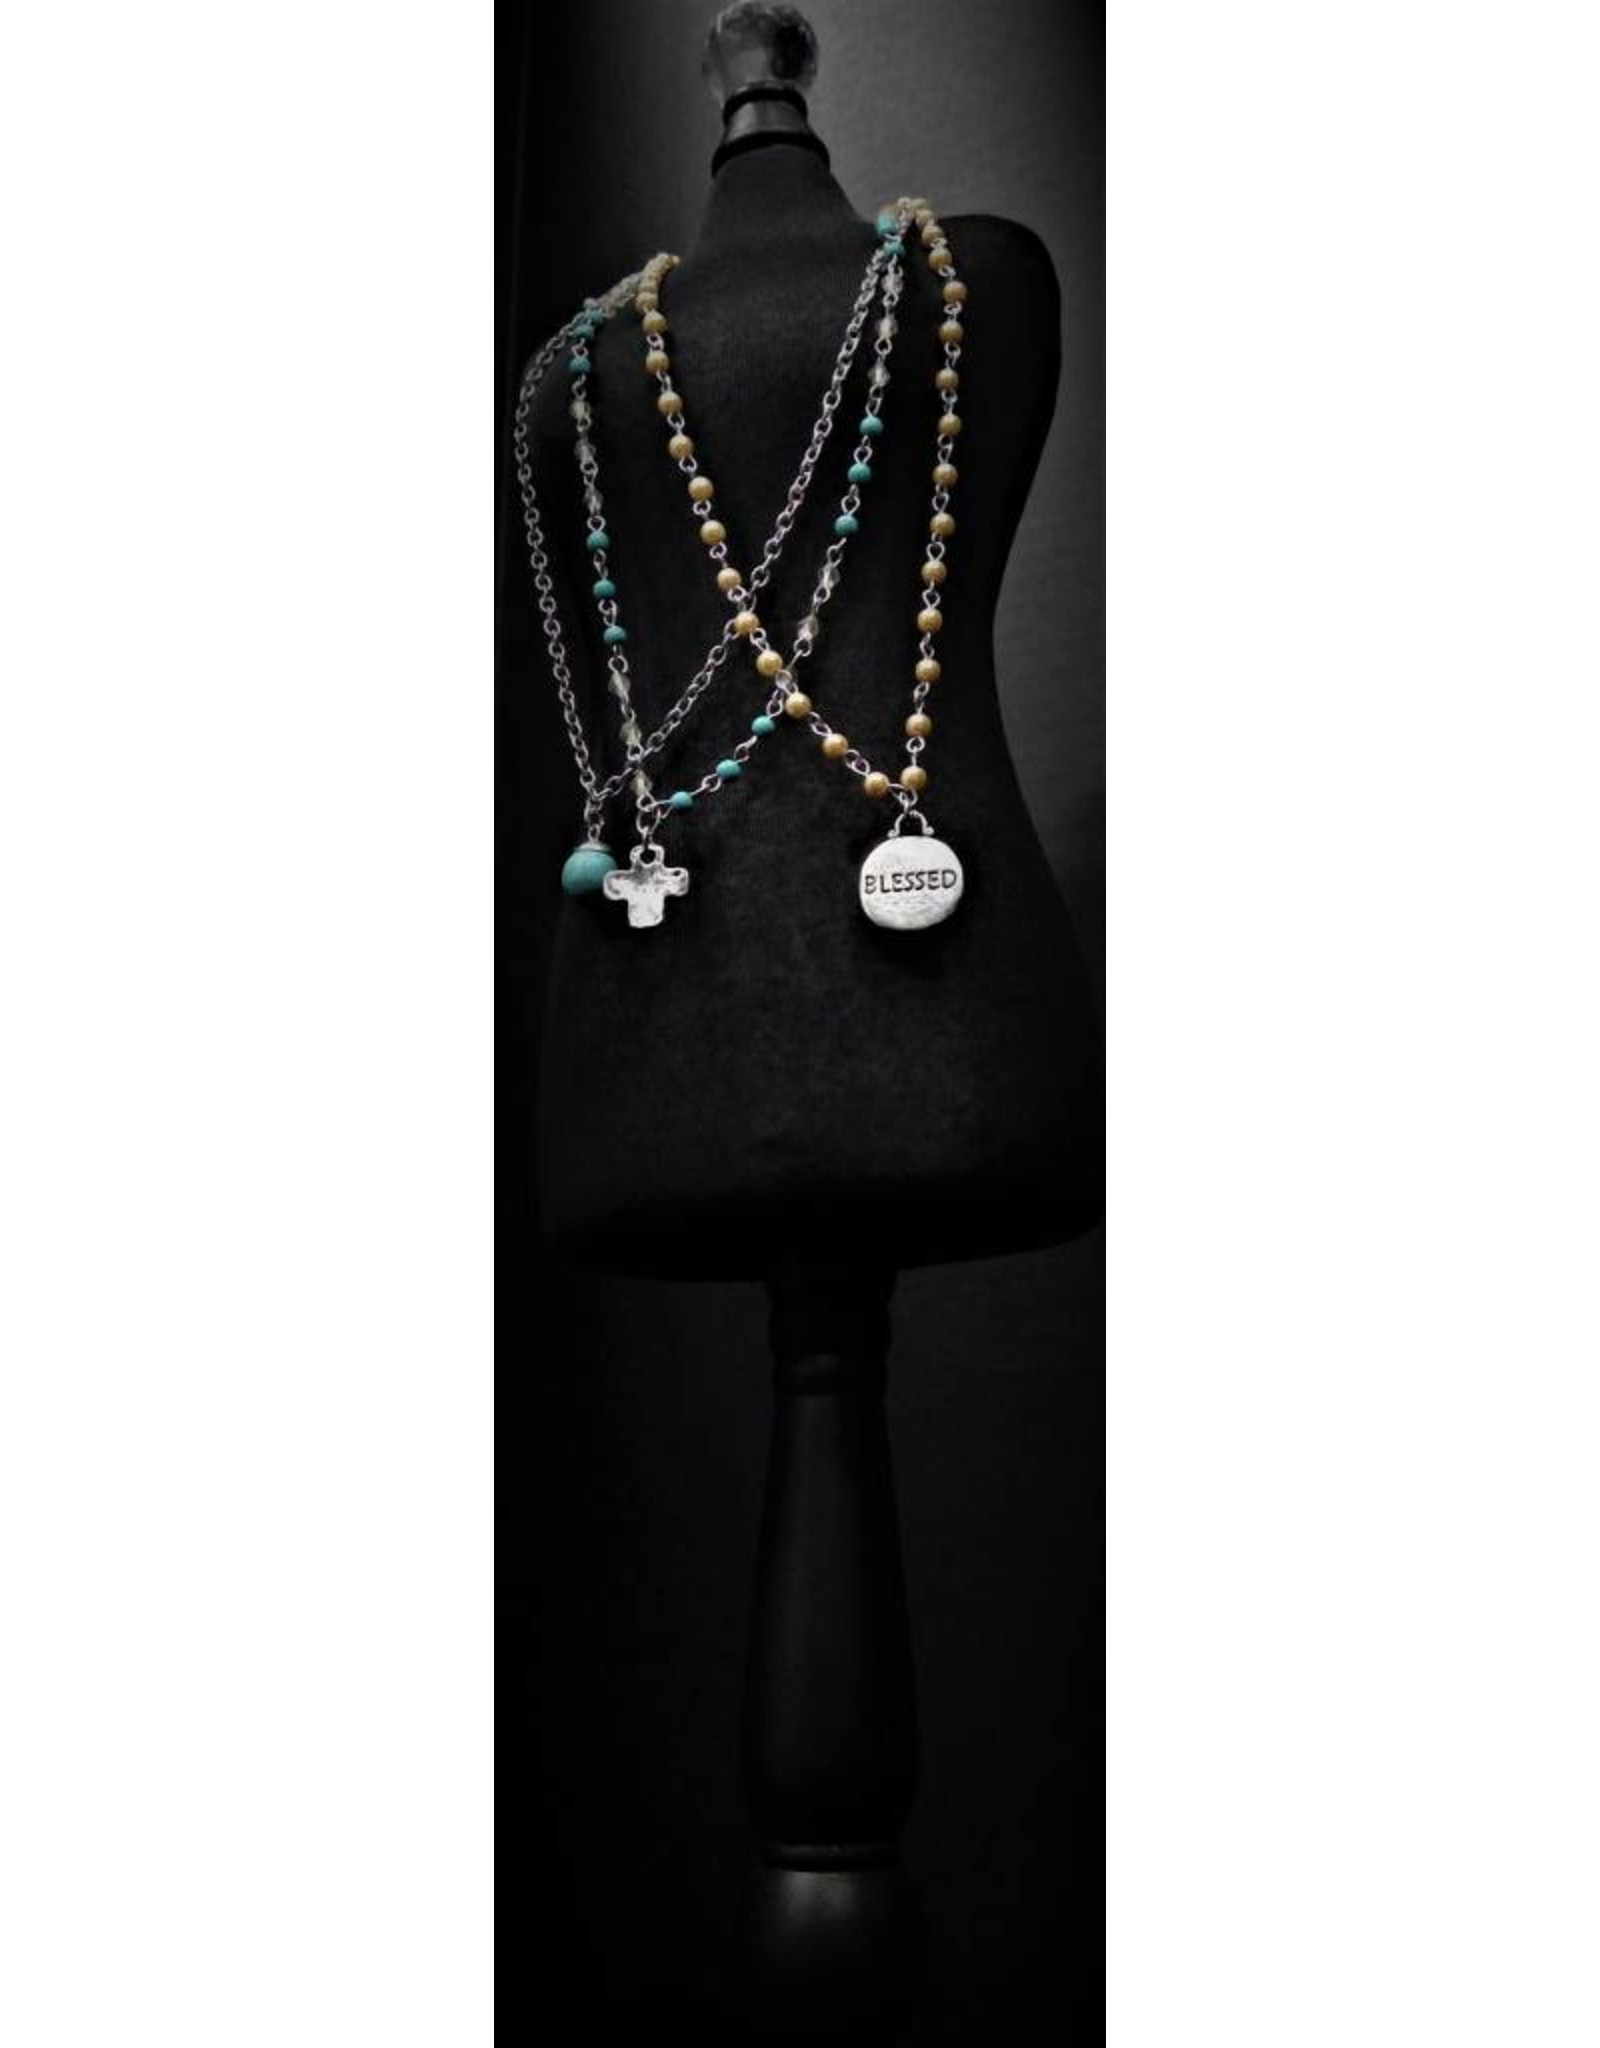 Fossick Imports Turquoise BLESSED 3-necklace set